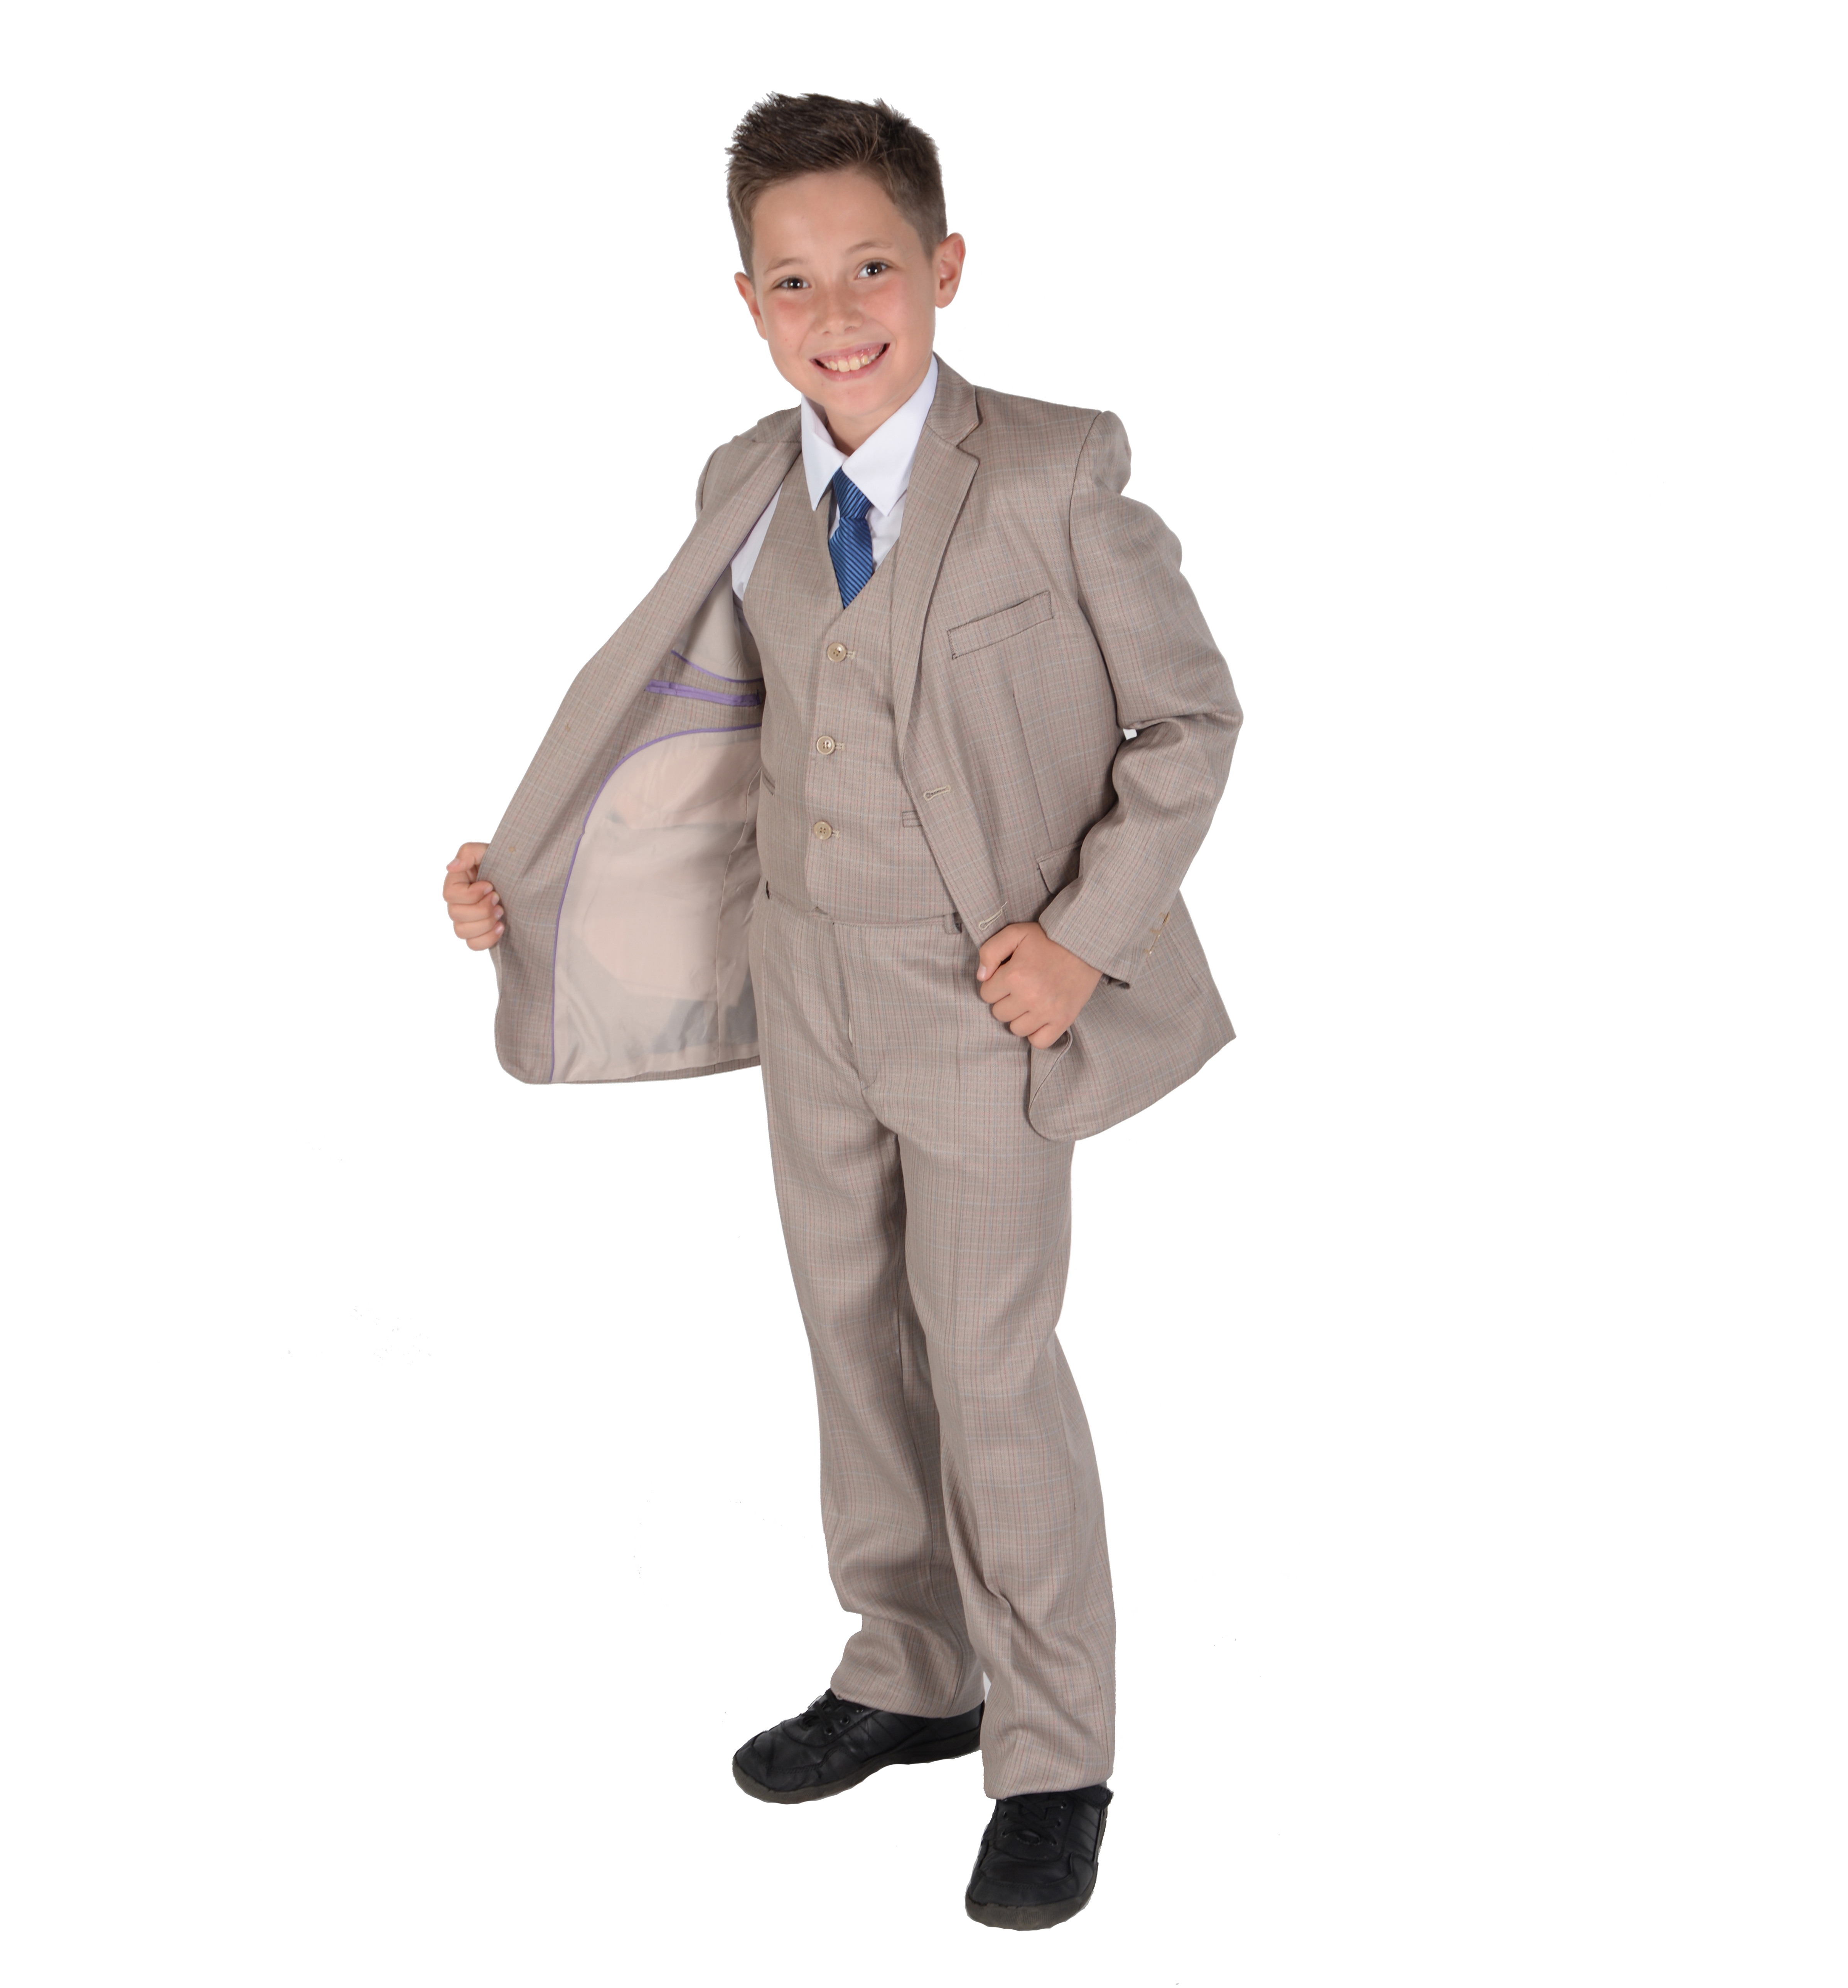 Cinda Boys Light Grey Suits Wedding PageBoy Party Prom 5 Piece Suit 2-12 Years